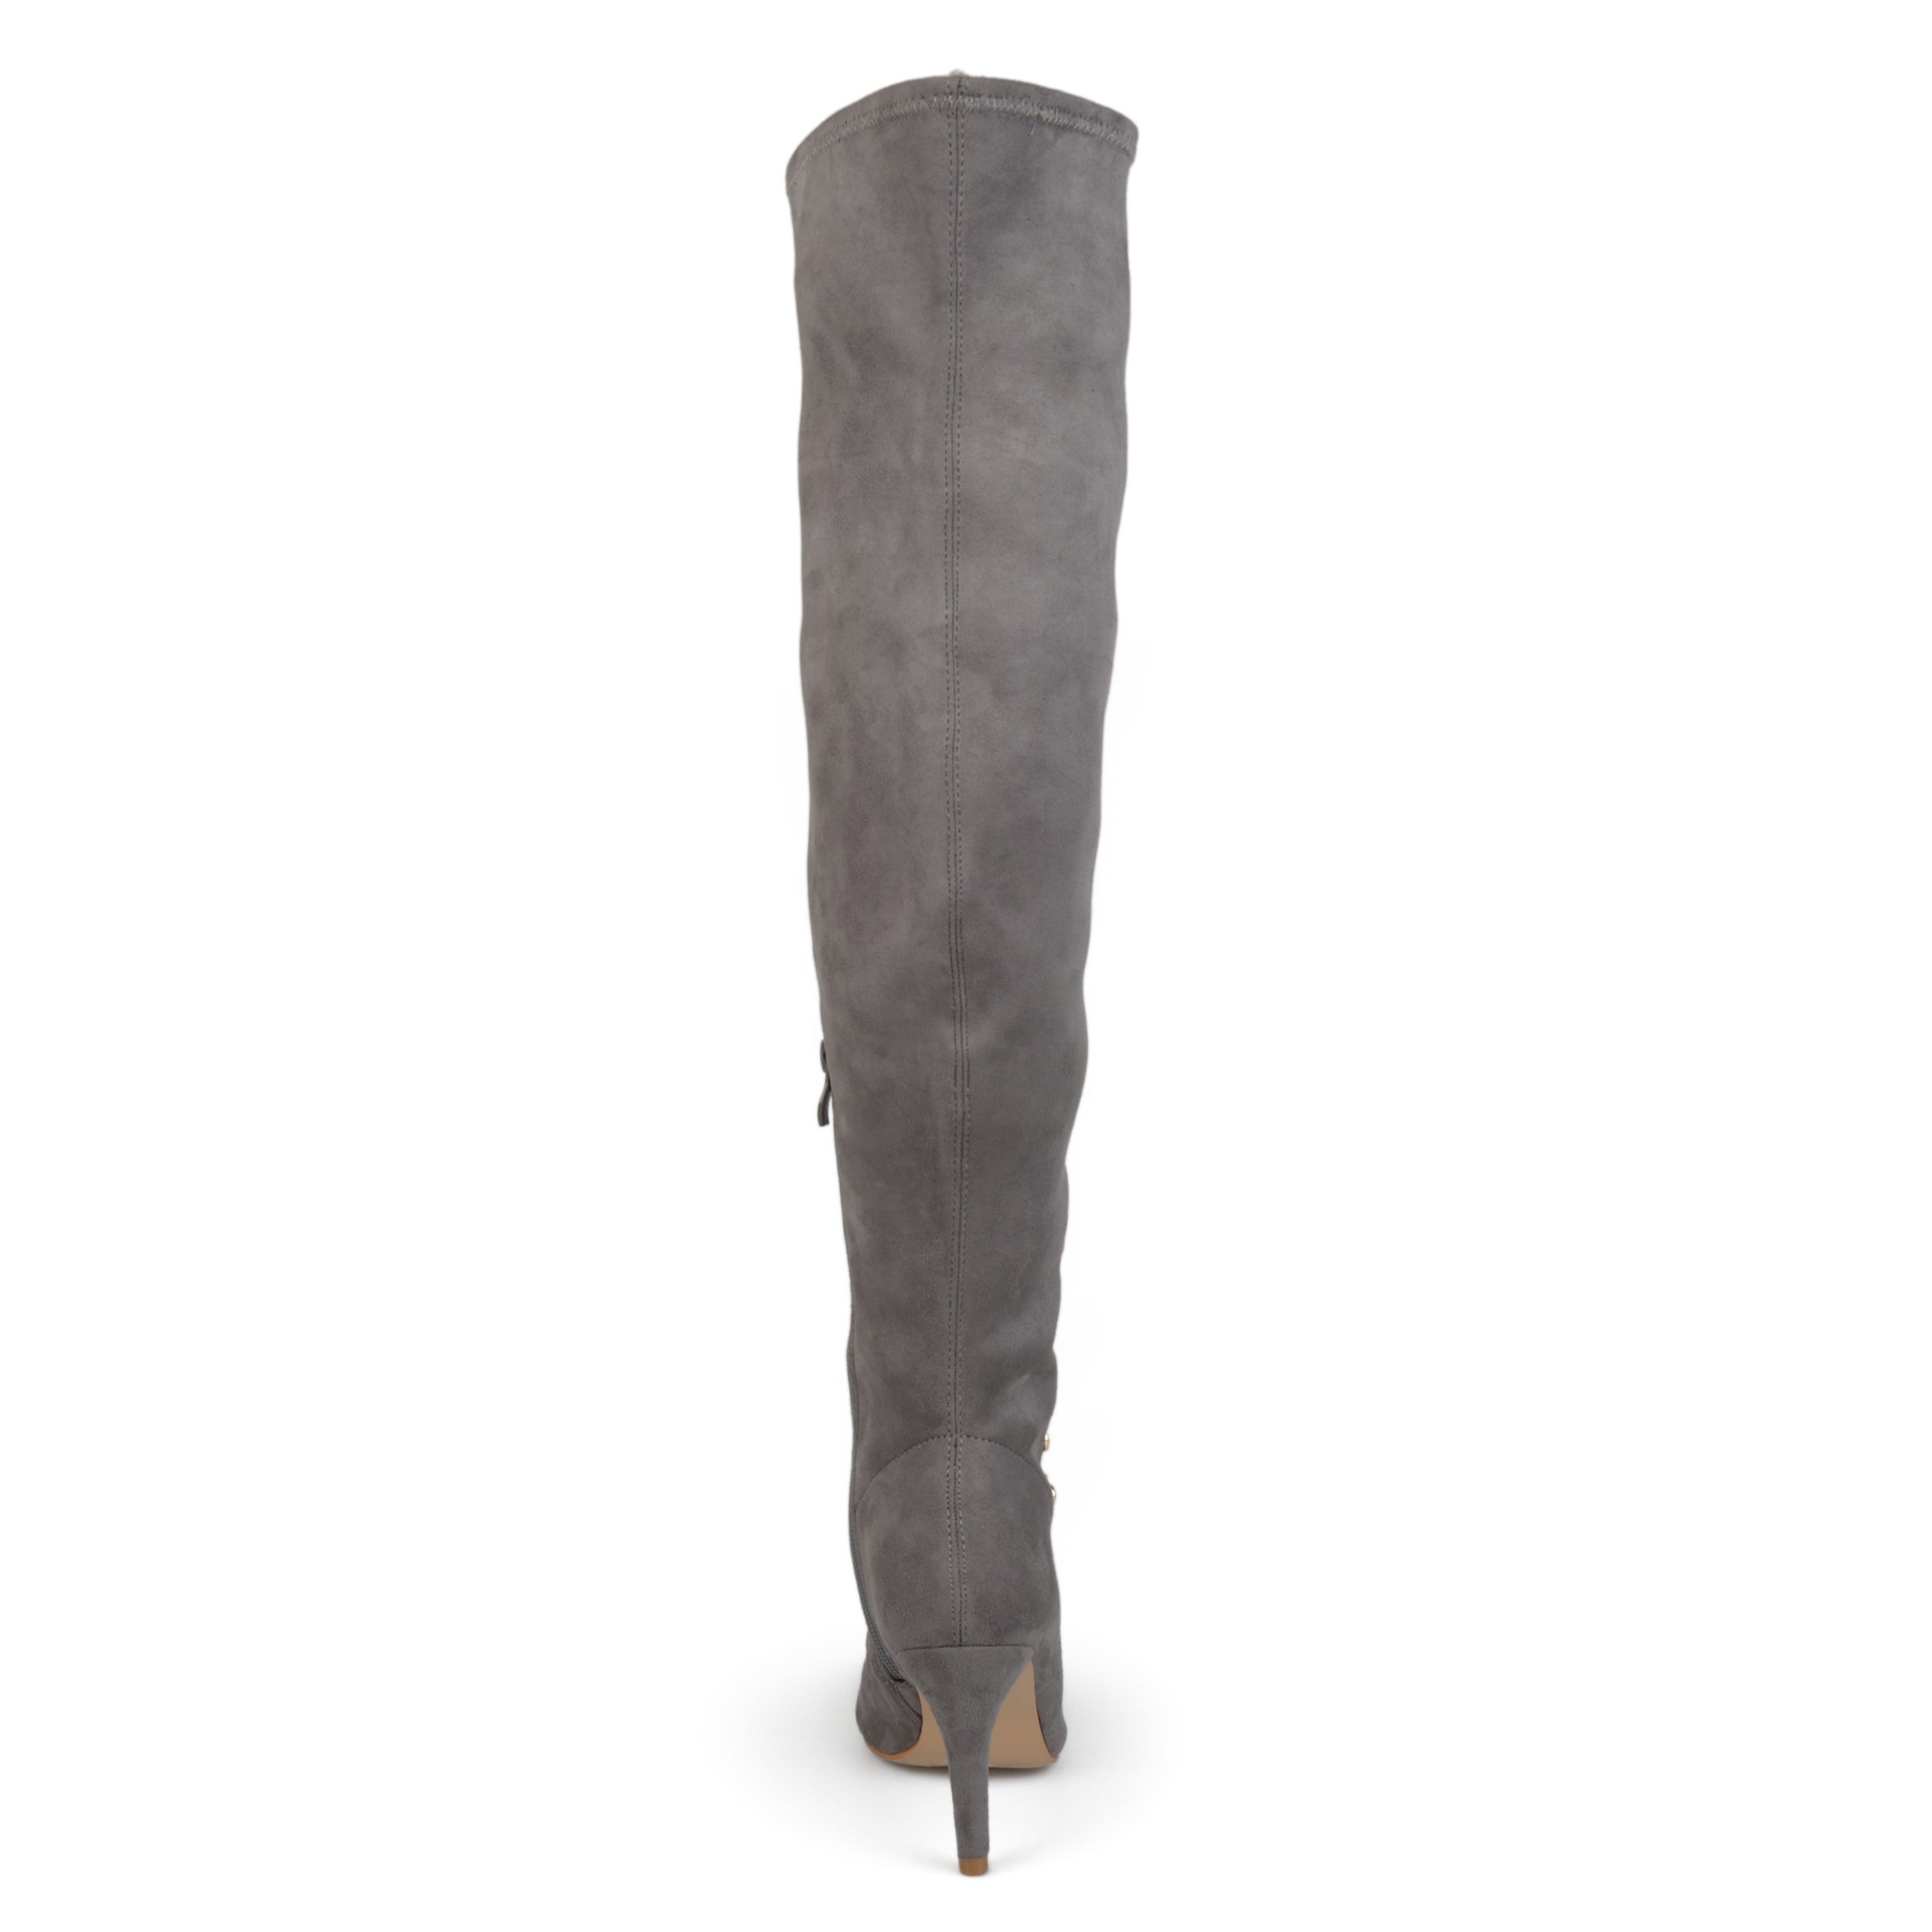 e022aef0928 Shop Journee Collection Women s  Trill  Regular and Wide Calf Boots - On  Sale - Free Shipping Today - Overstock - 17011774